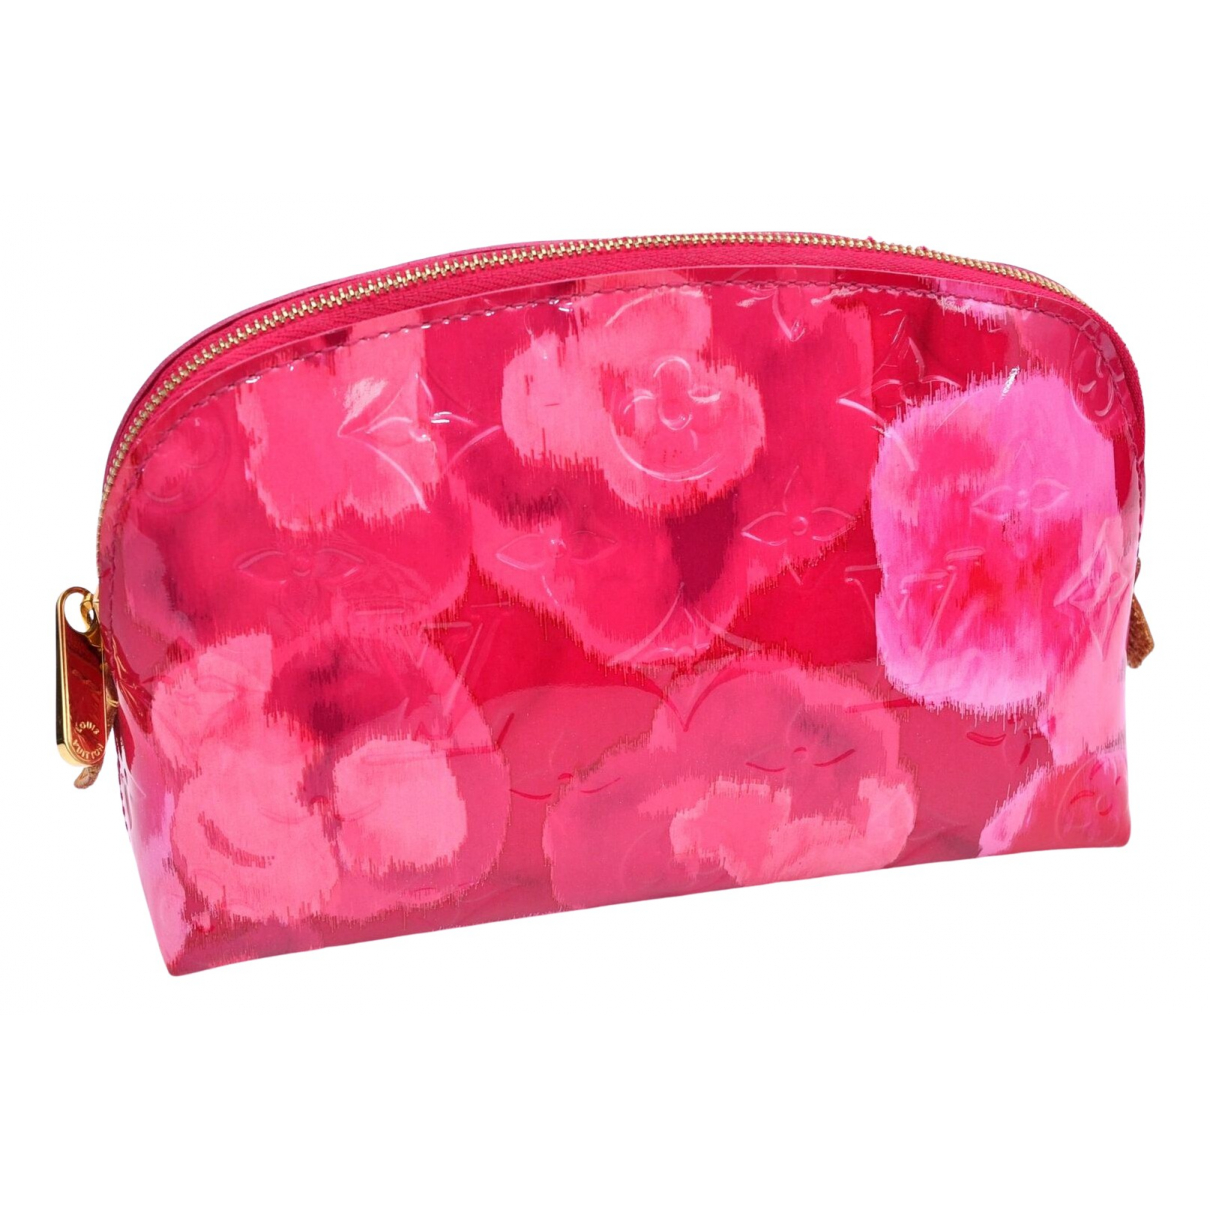 Louis Vuitton \N Pink Patent leather Clutch bag for Women \N